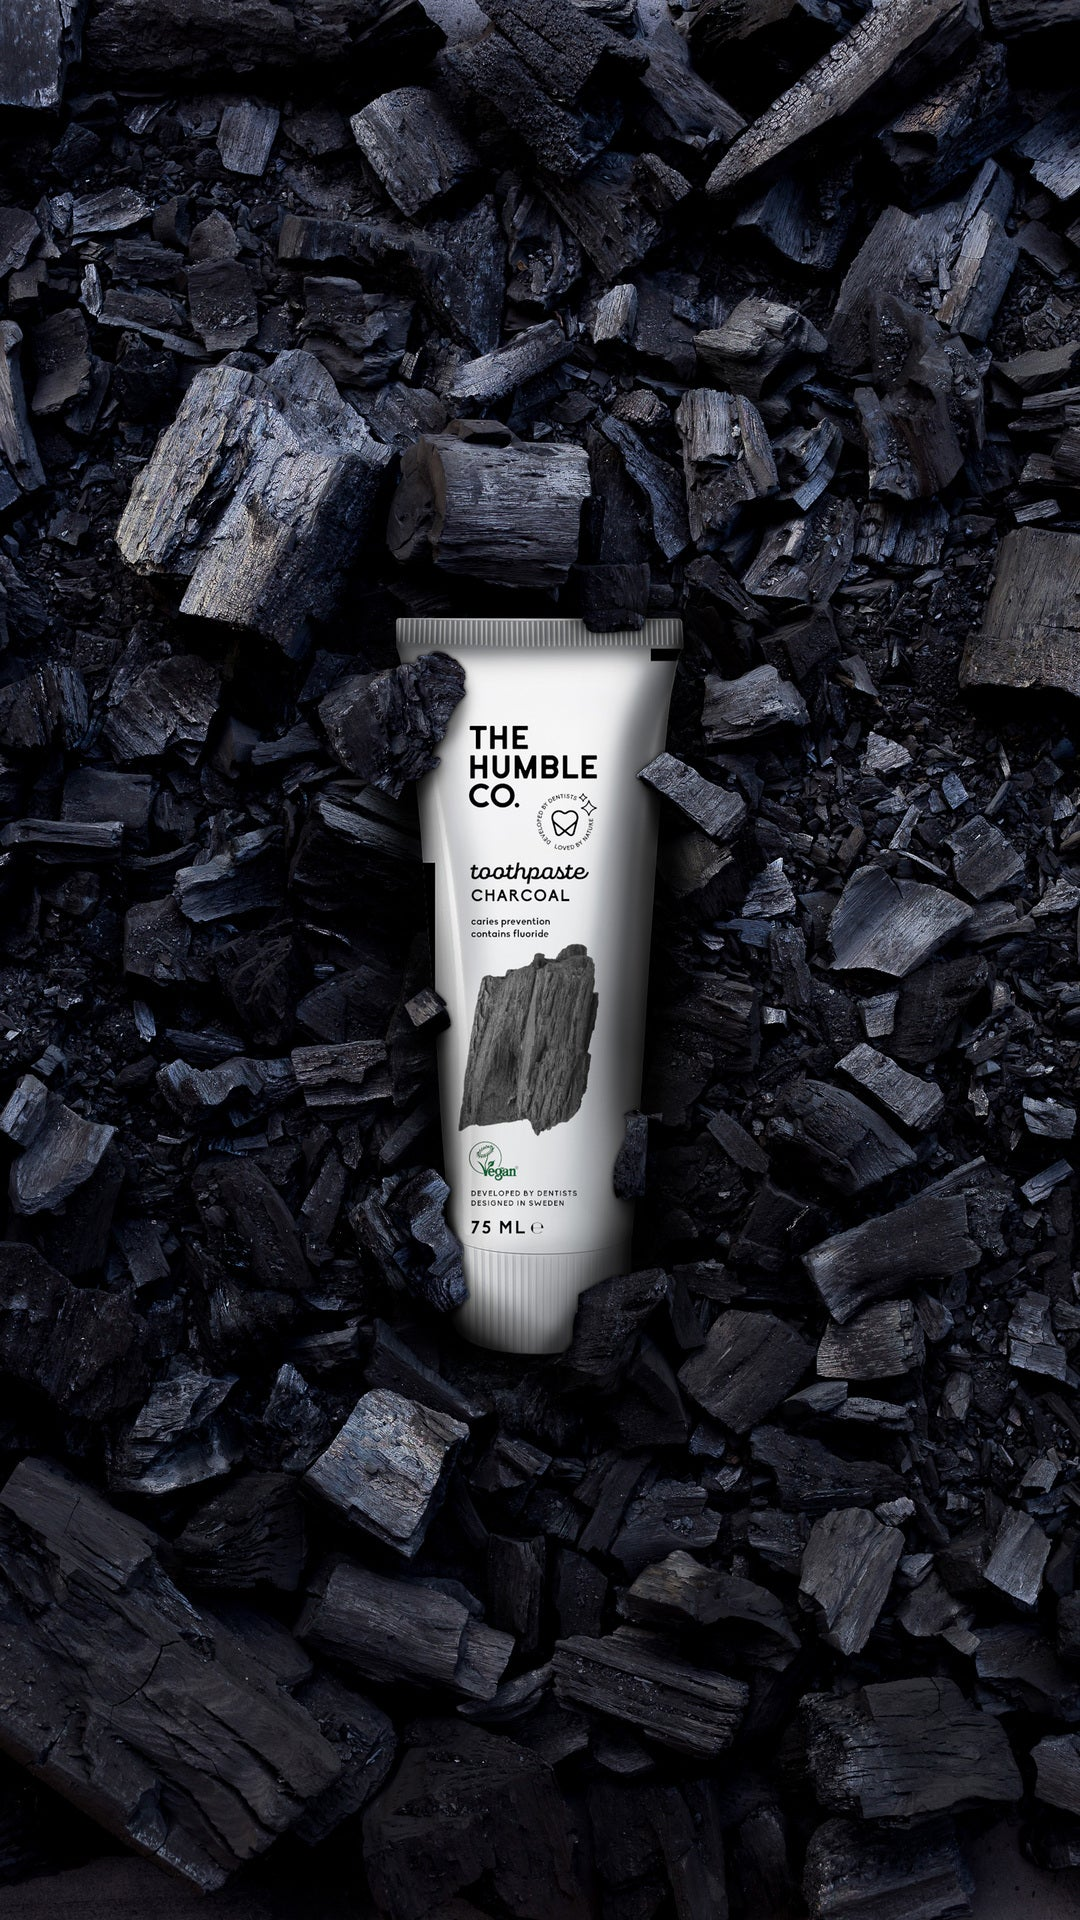 Natural Toothpaste Charcoal | Natural Toothpaste Cinnamon | Natural Toothpaste Fresh Mint | Natural Toothpaste | Cinnamon with fluoride | The Humble Co. | Nourished Eco Oral Care | Natural Toothpaste | The Humble Co. | Nourished